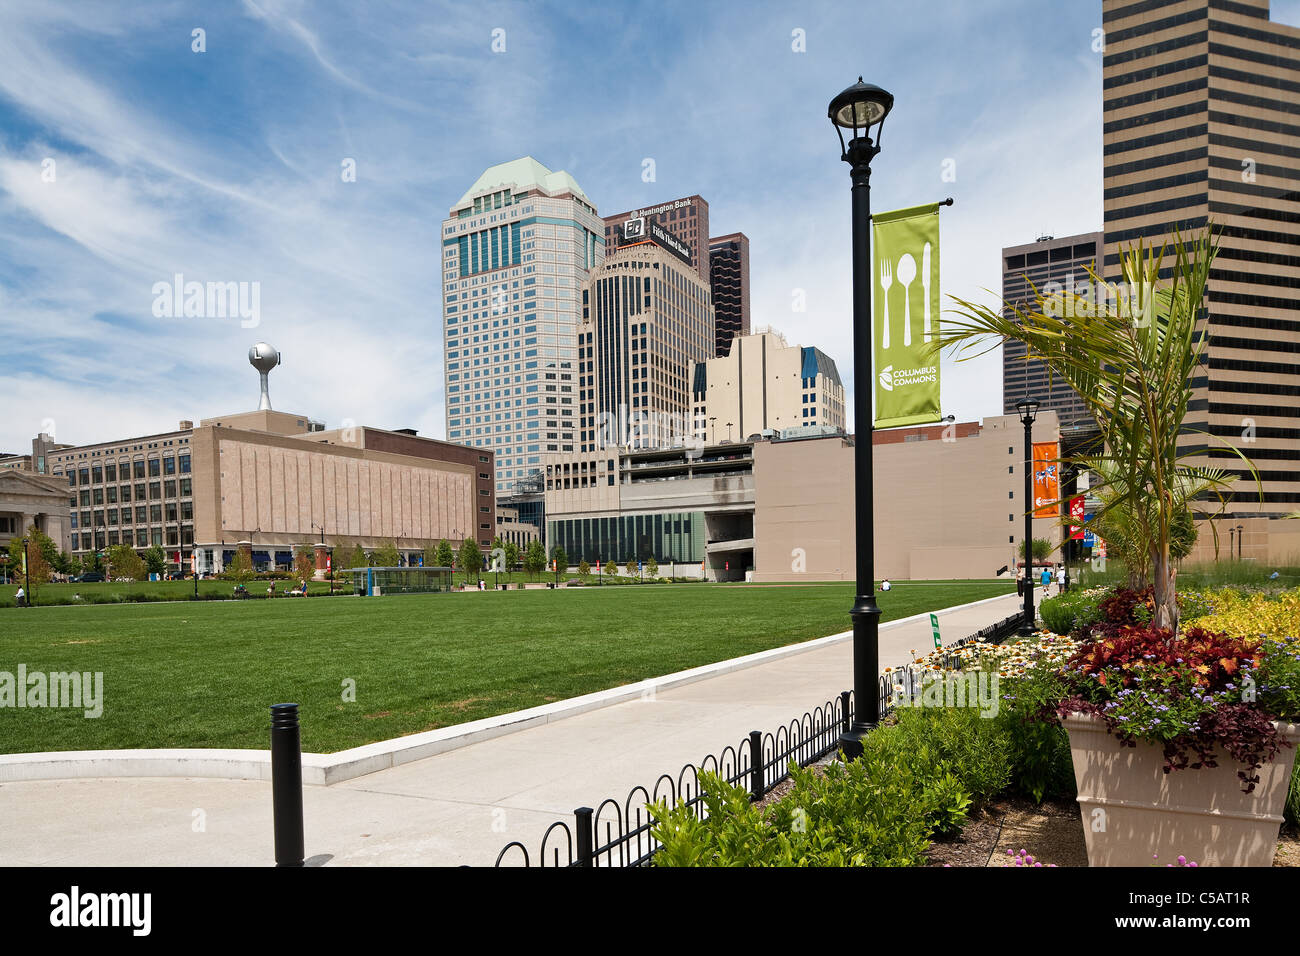 downtown columbus ohio oh skyline commons park - Stock Image